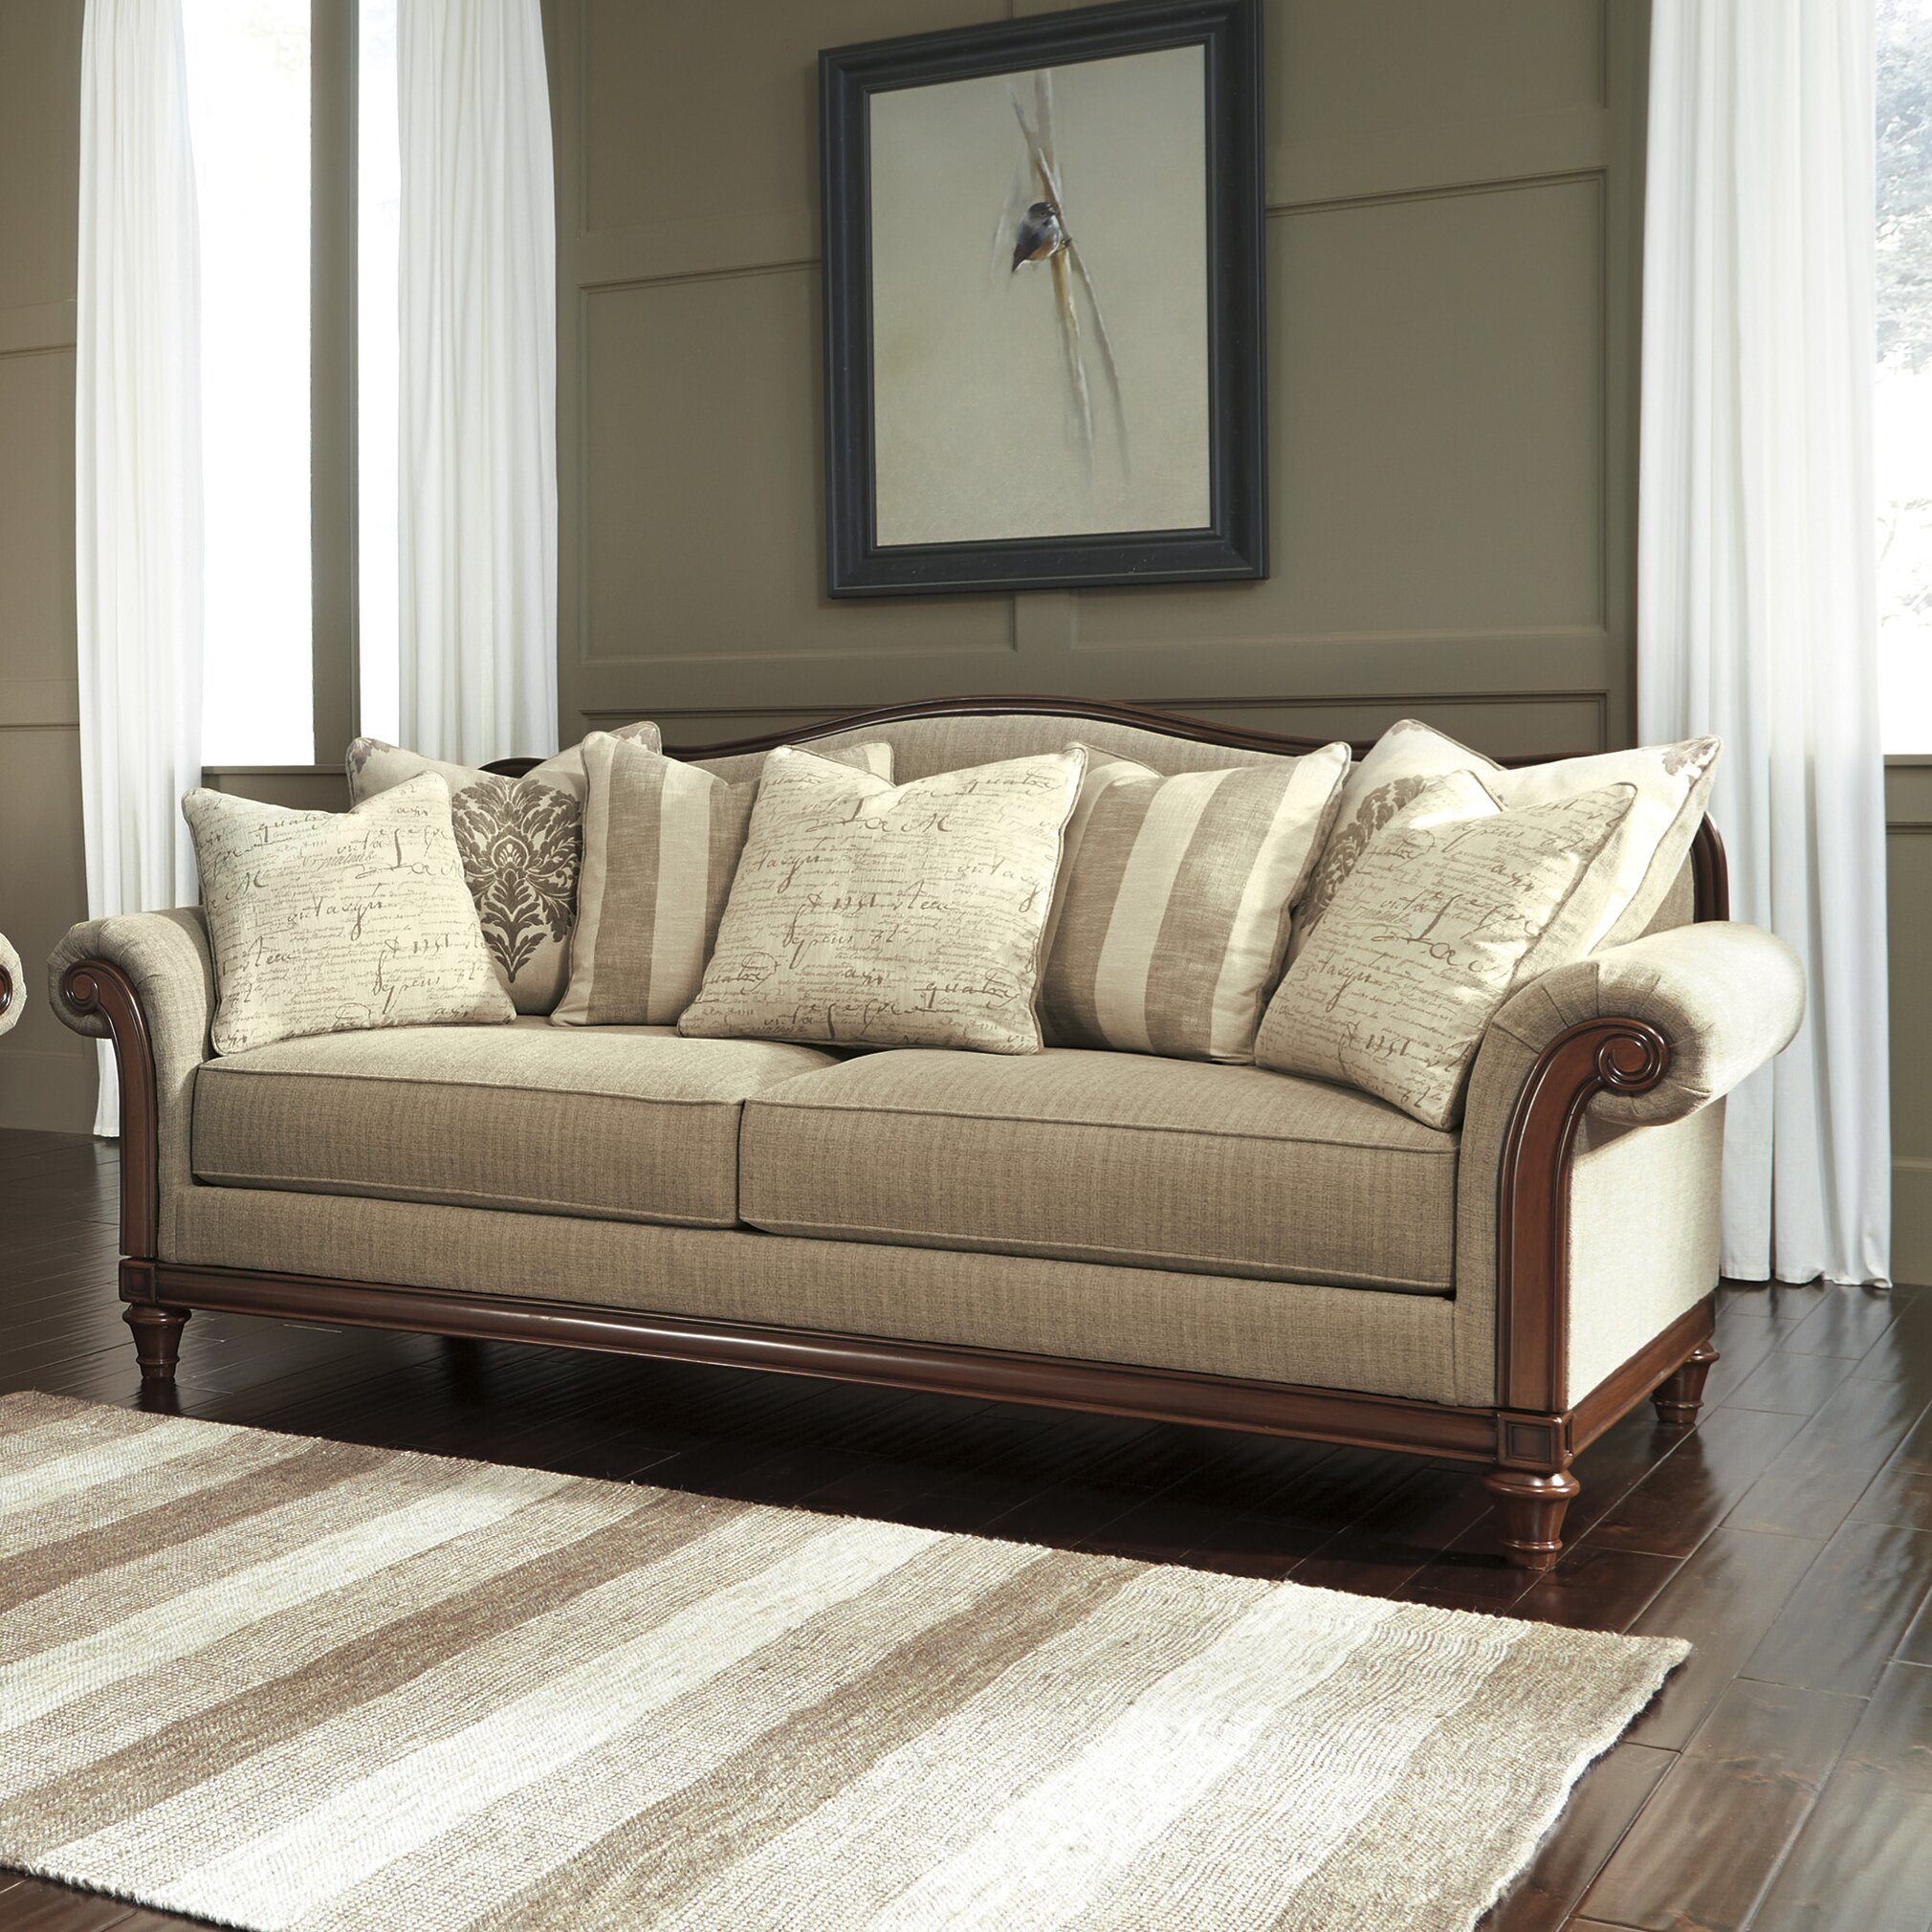 Ashley Signature Collection: Signature Design By Ashley Berwyn Living Room Collection